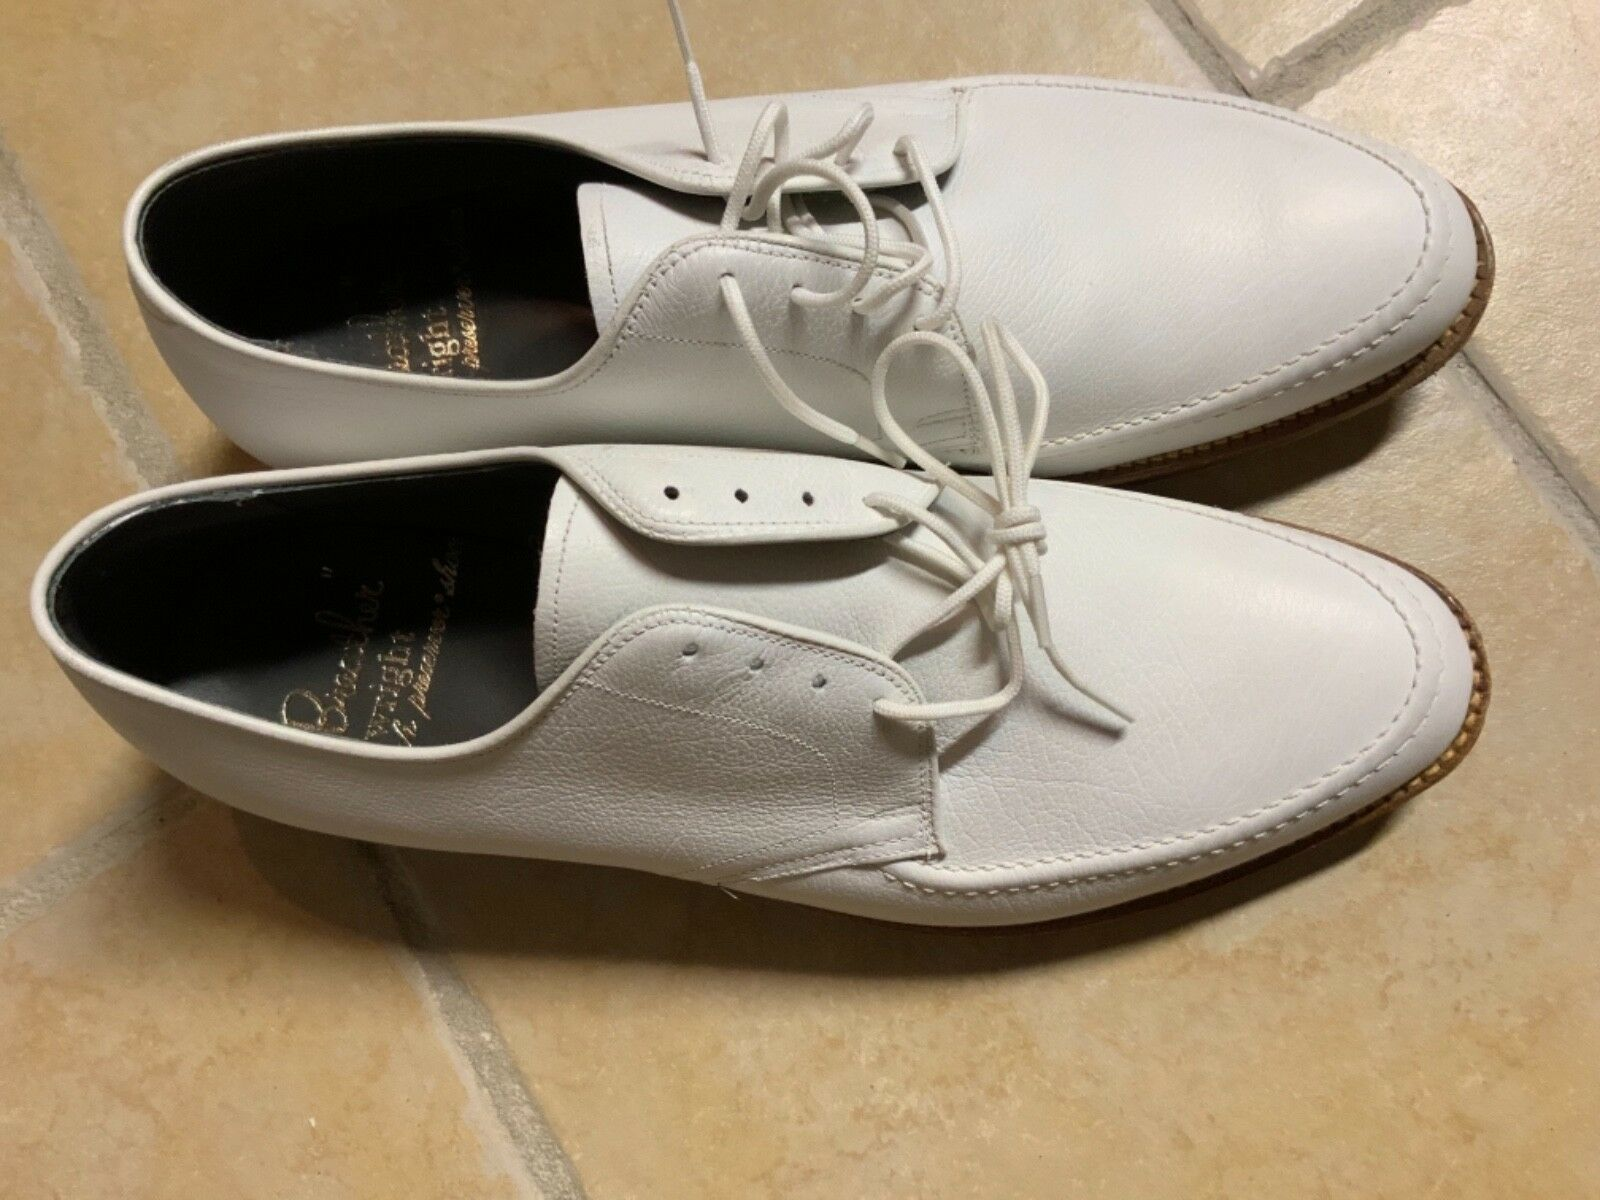 Breather Wright Arch Peserver Men's White Dress shoes Size 9